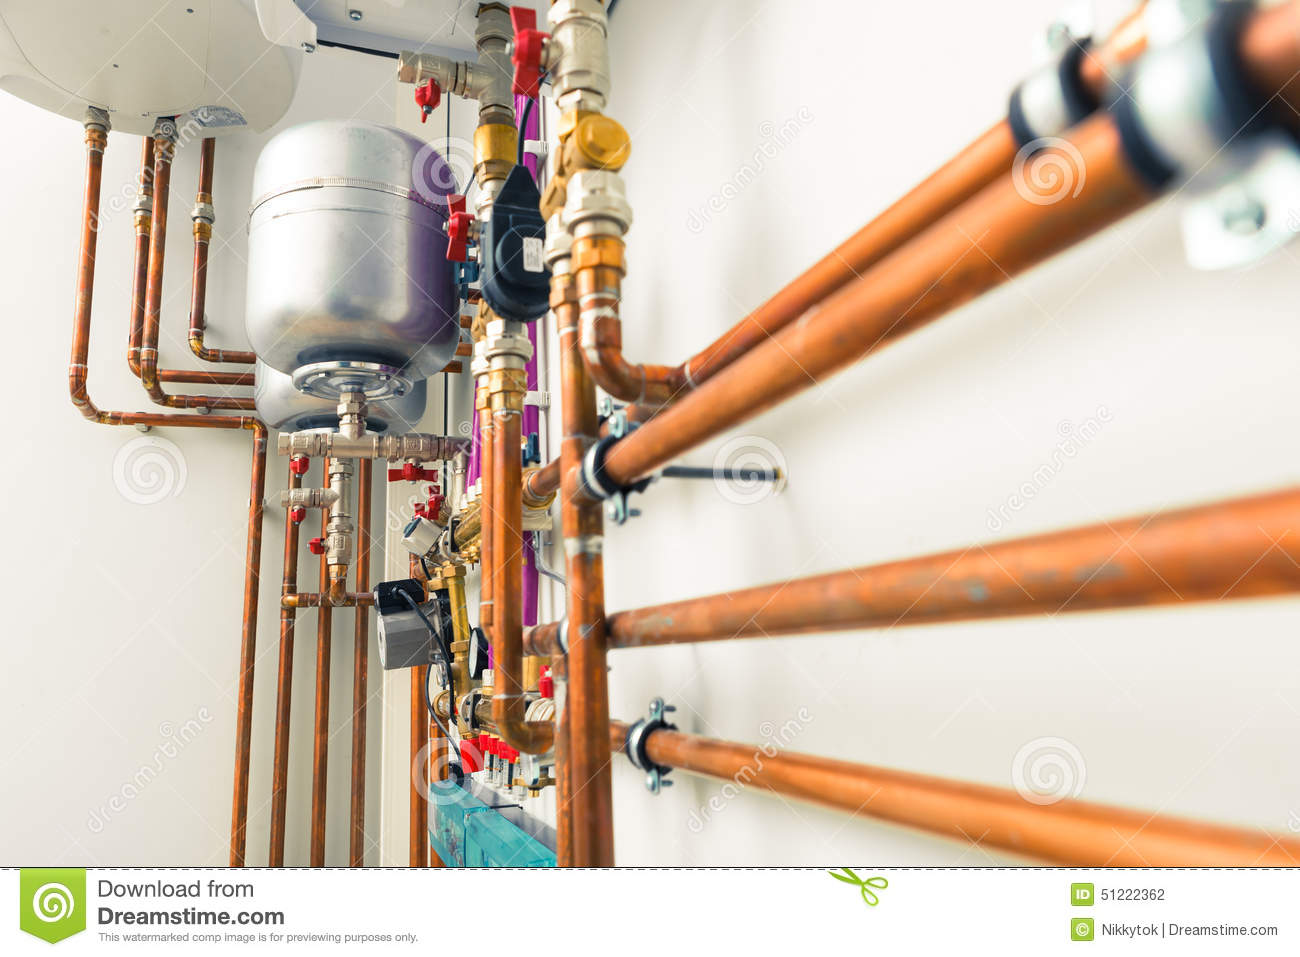 Steam Leak From Pipe : Copper pipes engineering stock photo image of